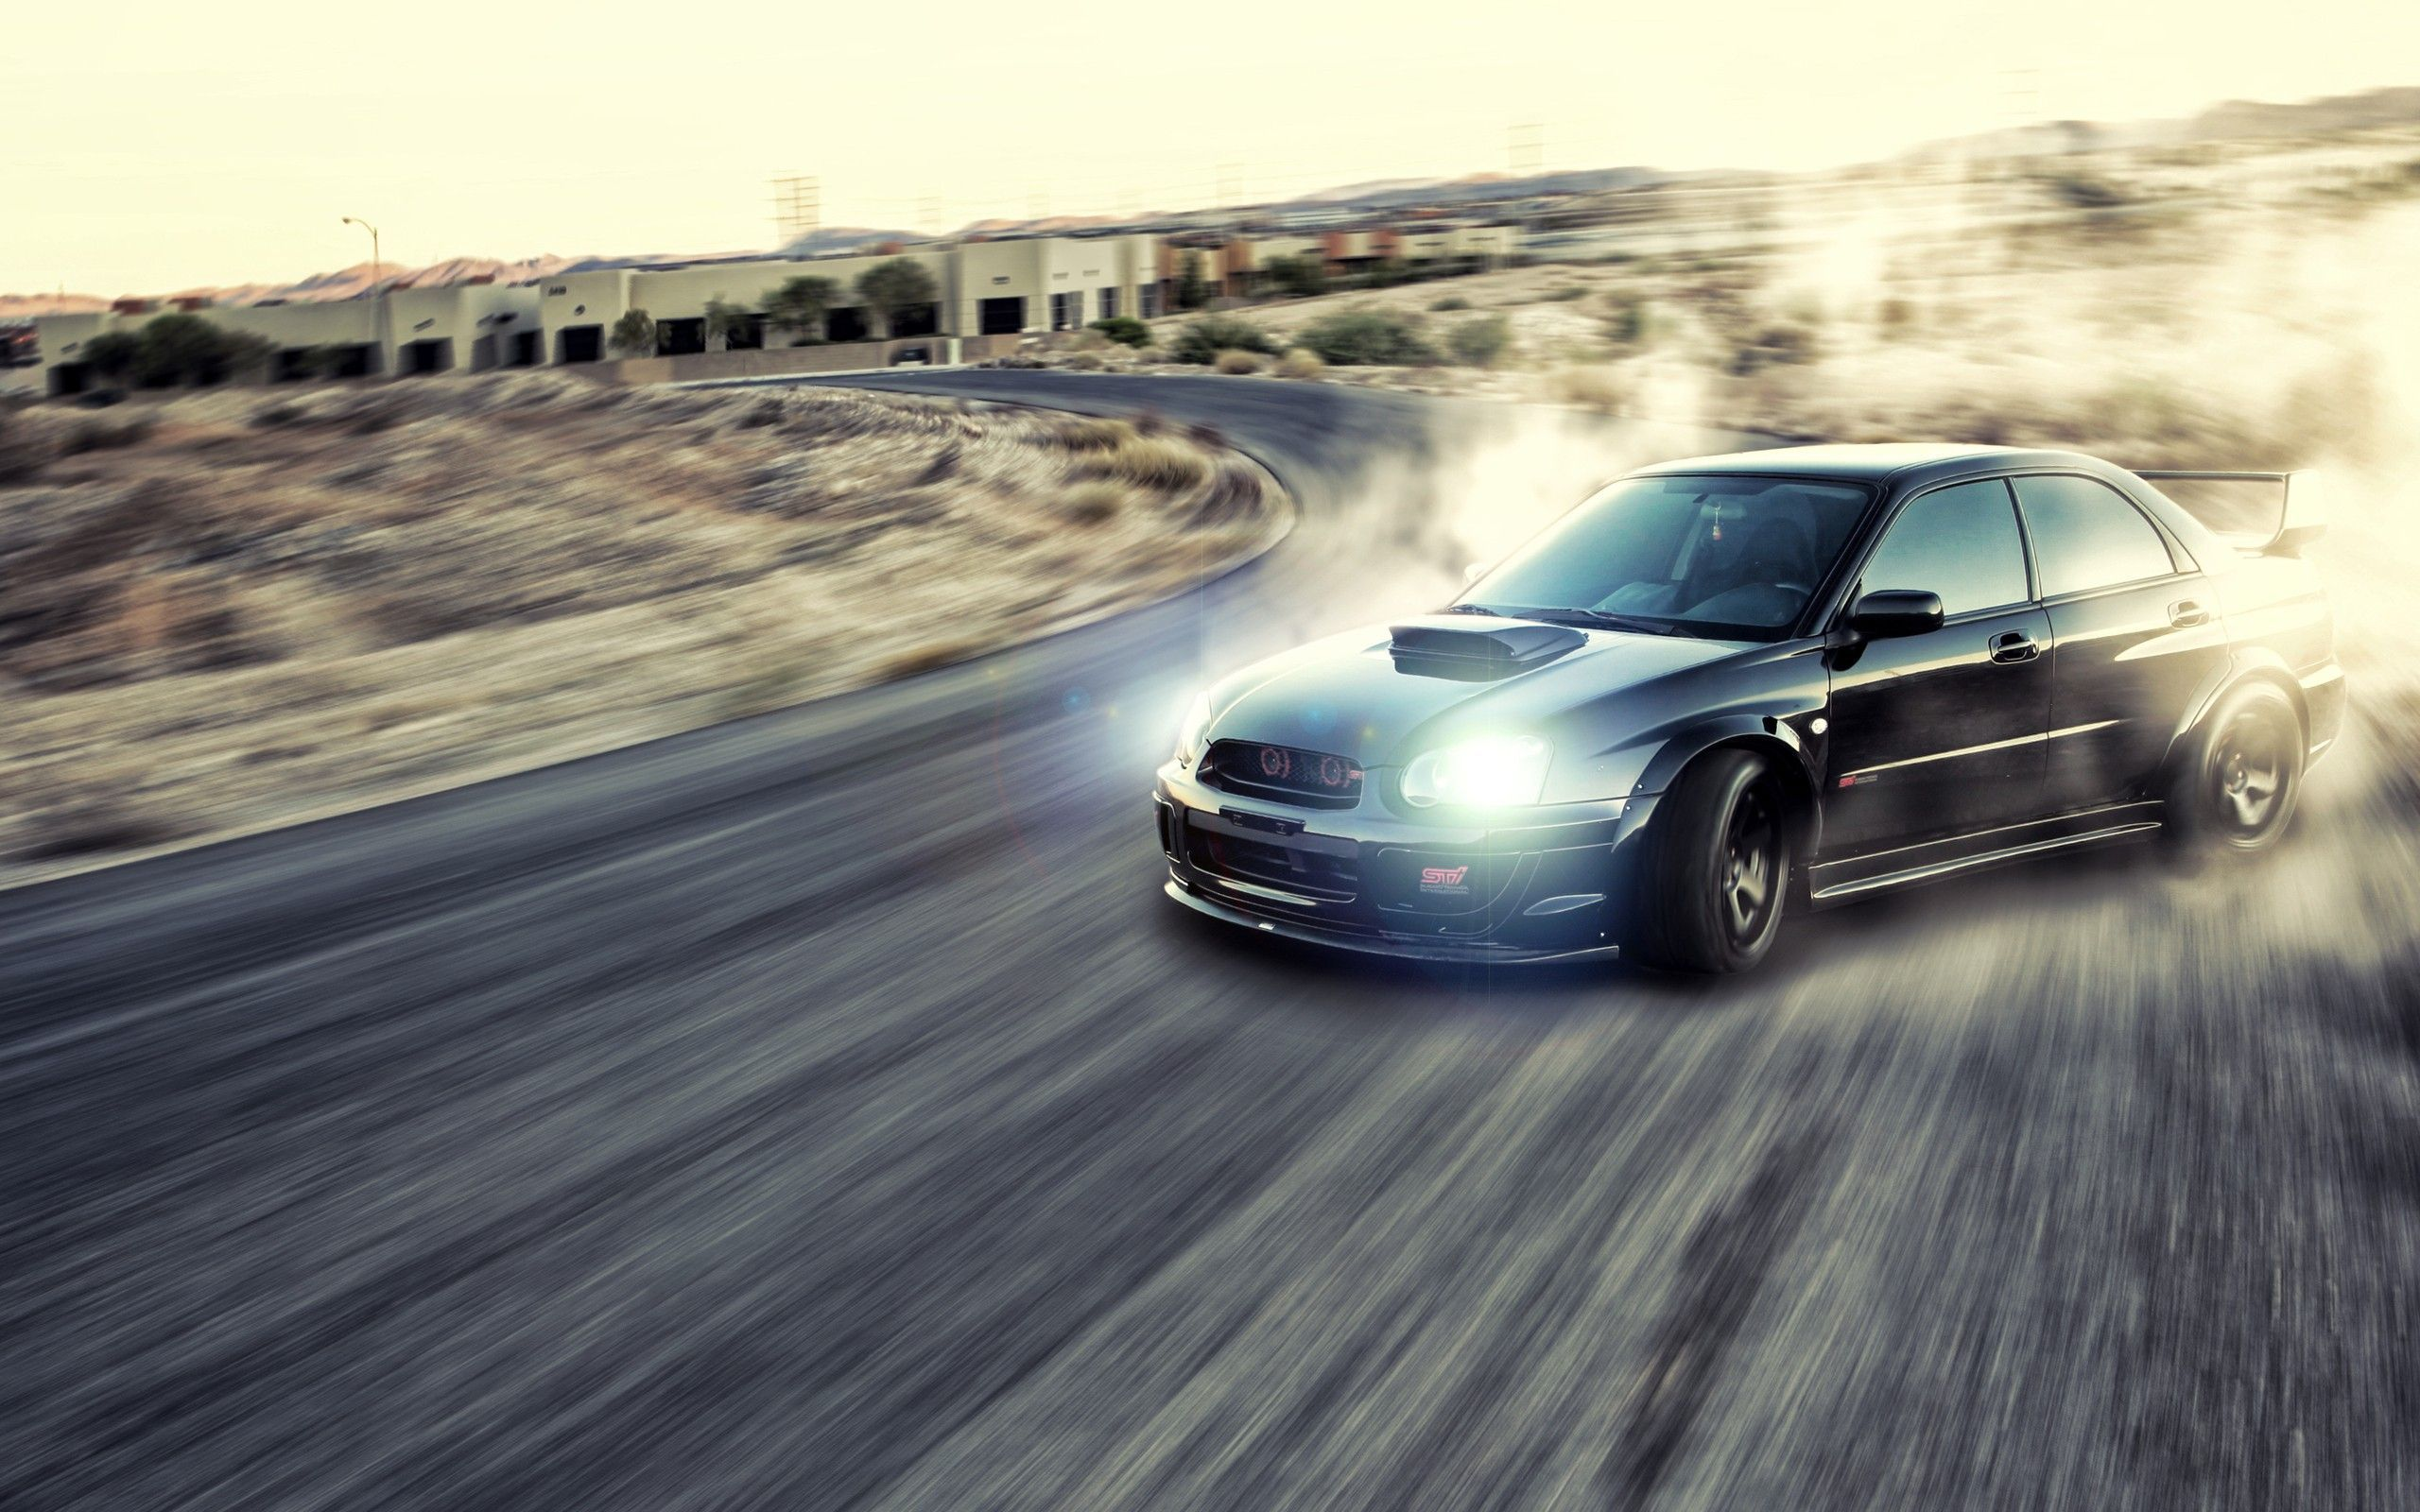 subaru impreza wrx sti wallpapers wallpaper cave. Black Bedroom Furniture Sets. Home Design Ideas